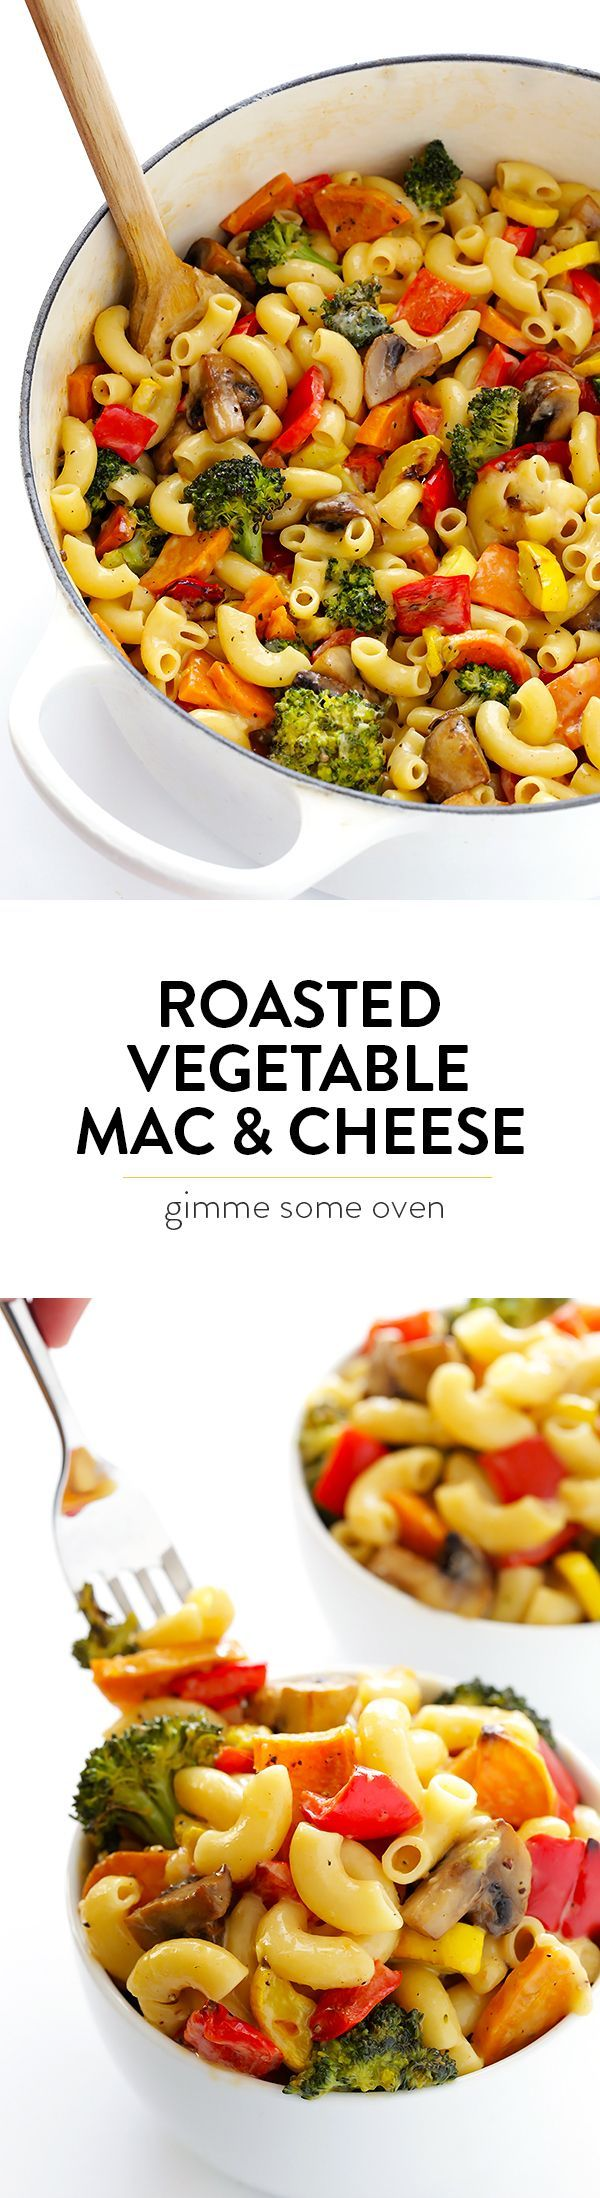 Roasted Vegetable Mac and Cheese -- pick out your favorite veggies and add them to this delicious, creamy, easy macaroni and cheese recipe! | gimmesomeoven.com #macandcheese #vegetarianrecipes #dinnerrecipes #pastarecipes